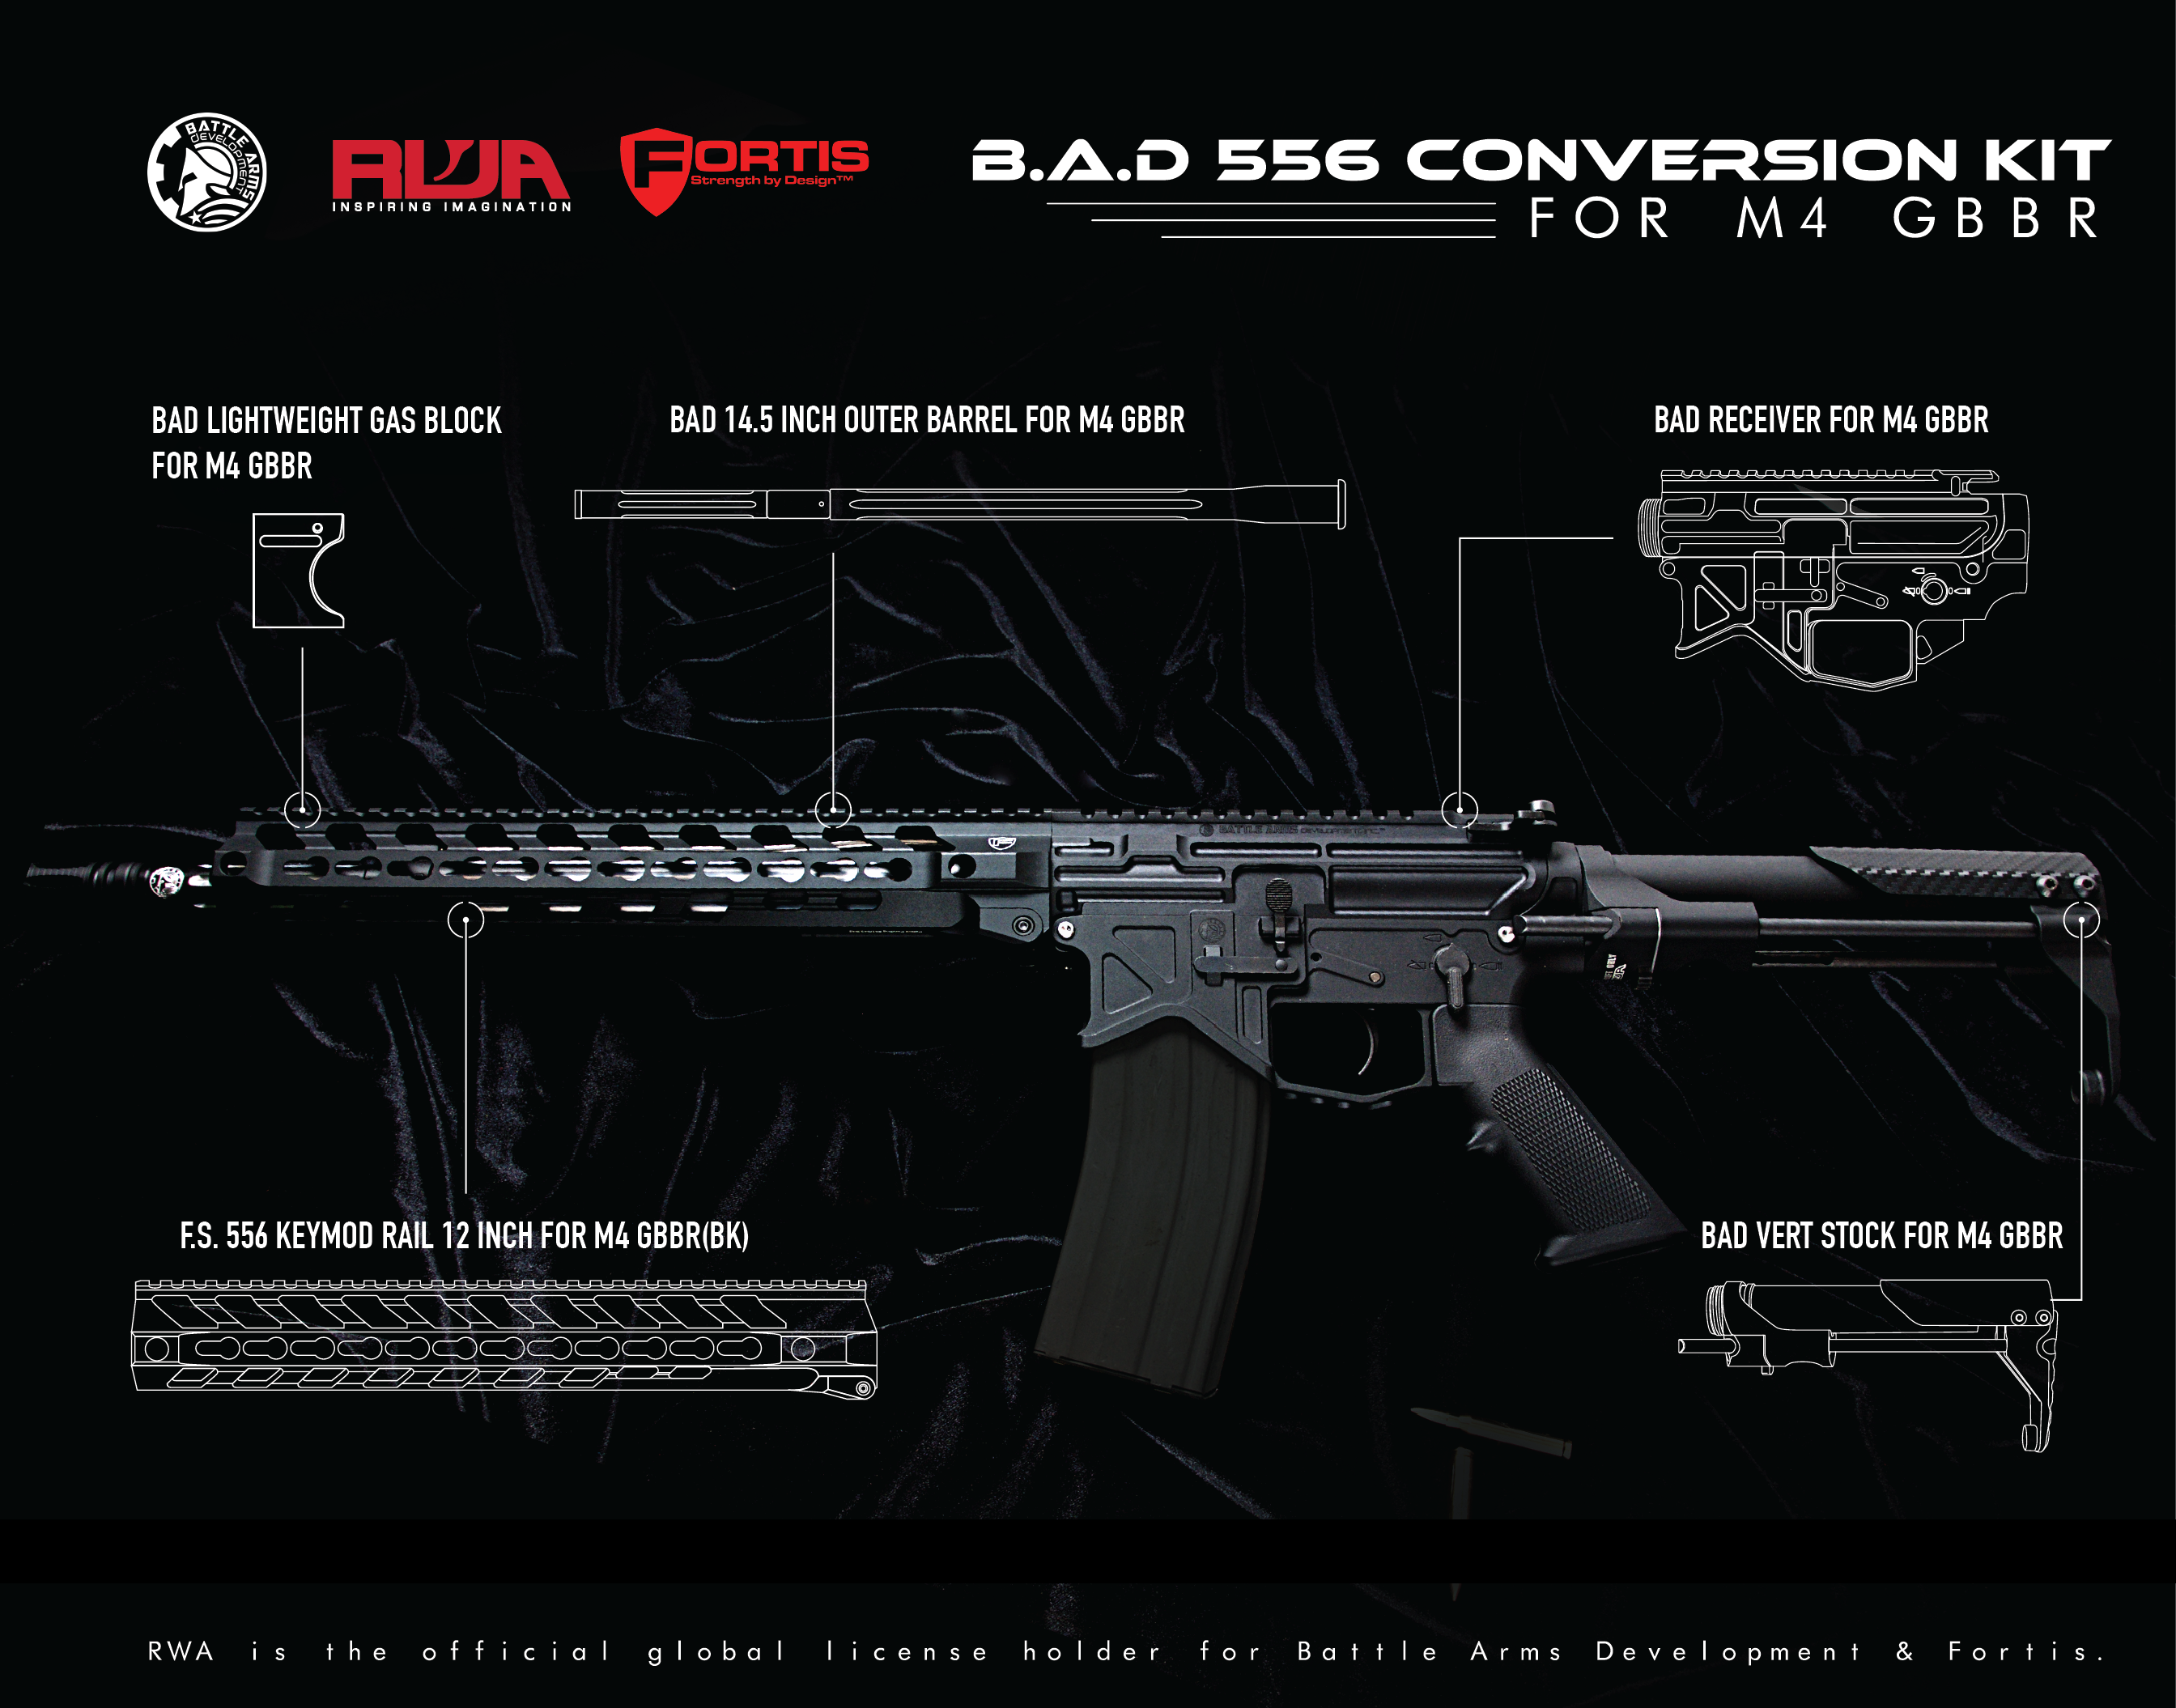 RWA x Battle Arms Development BAD556 Conversion Kit for